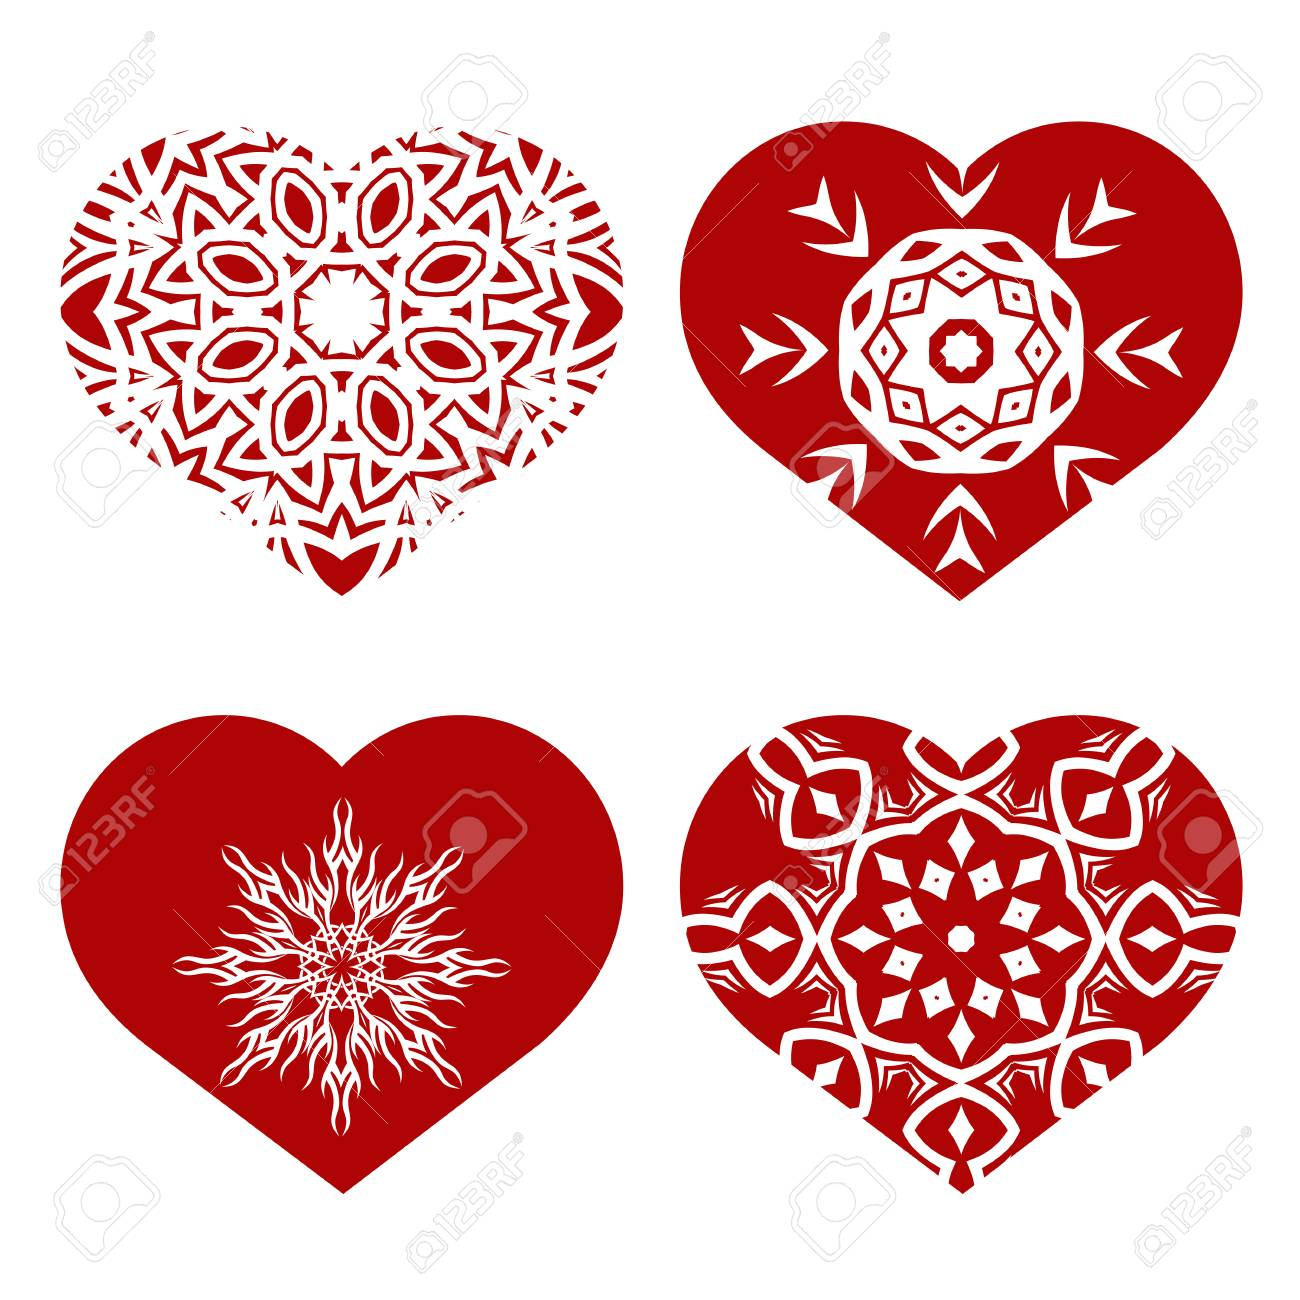 Romantic Red Heart Set Isolated On White Background Image Suitable